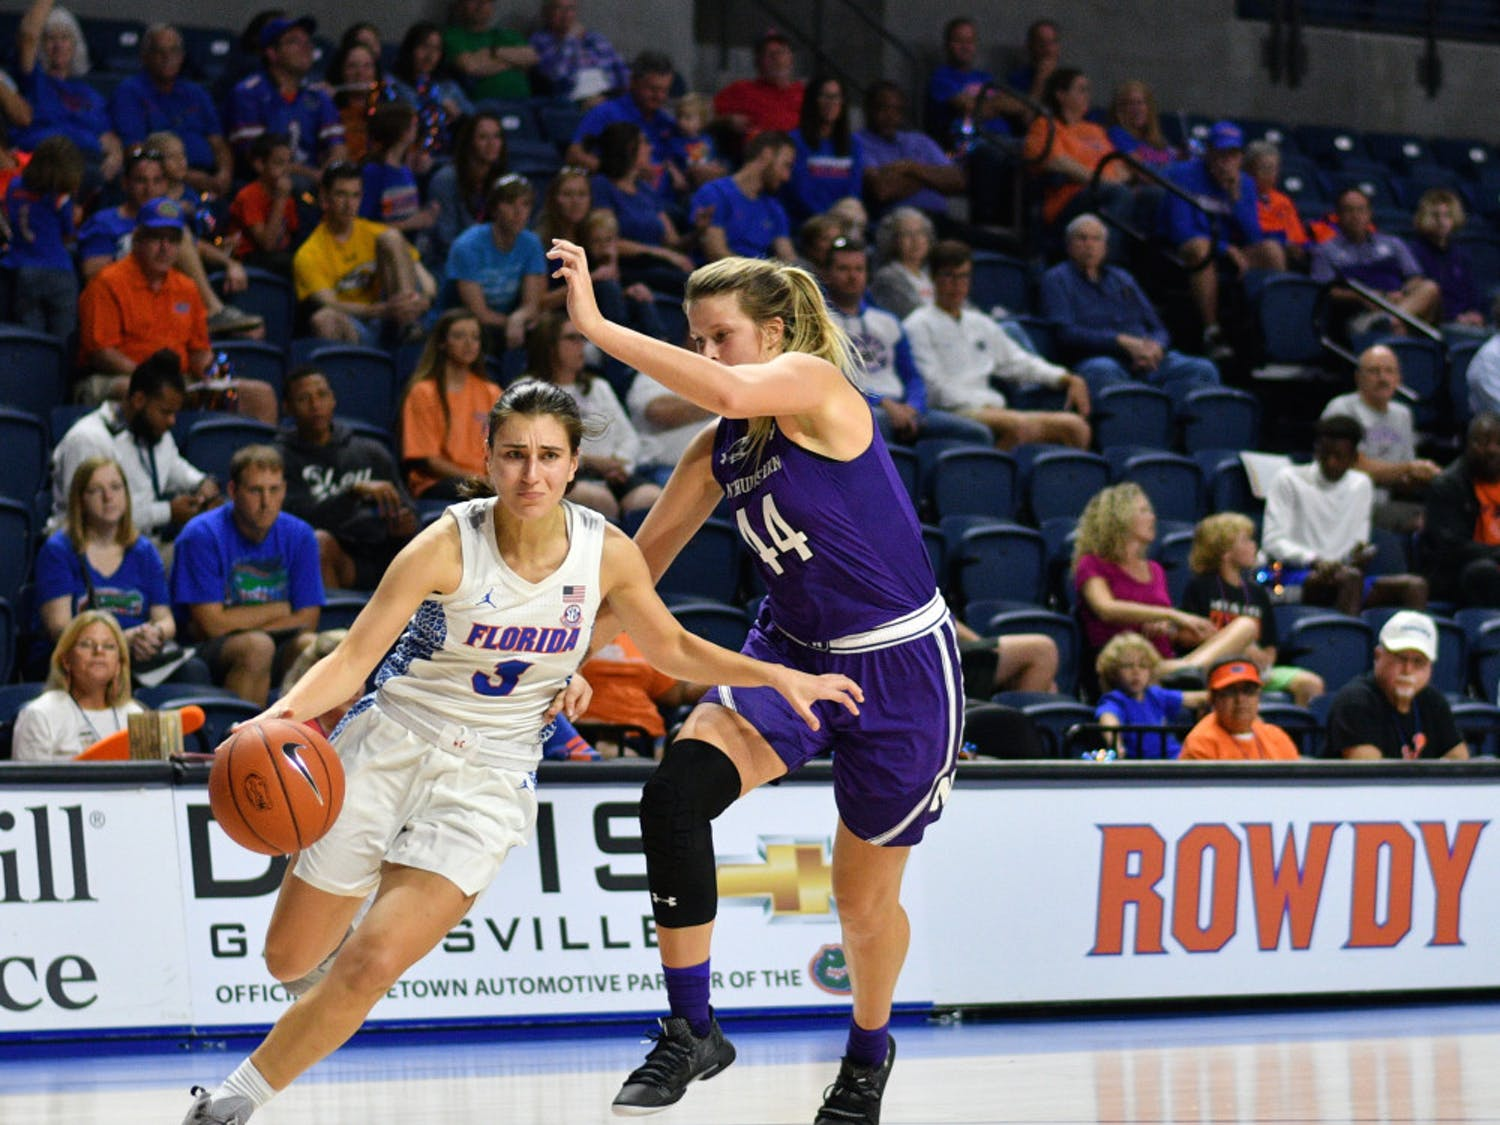 At 20.1 points per game, UF guardFunda Nakkasoglu leads the SEC in scoring. She's also one of five UF players returning from last year's team that strung together two wins in January.